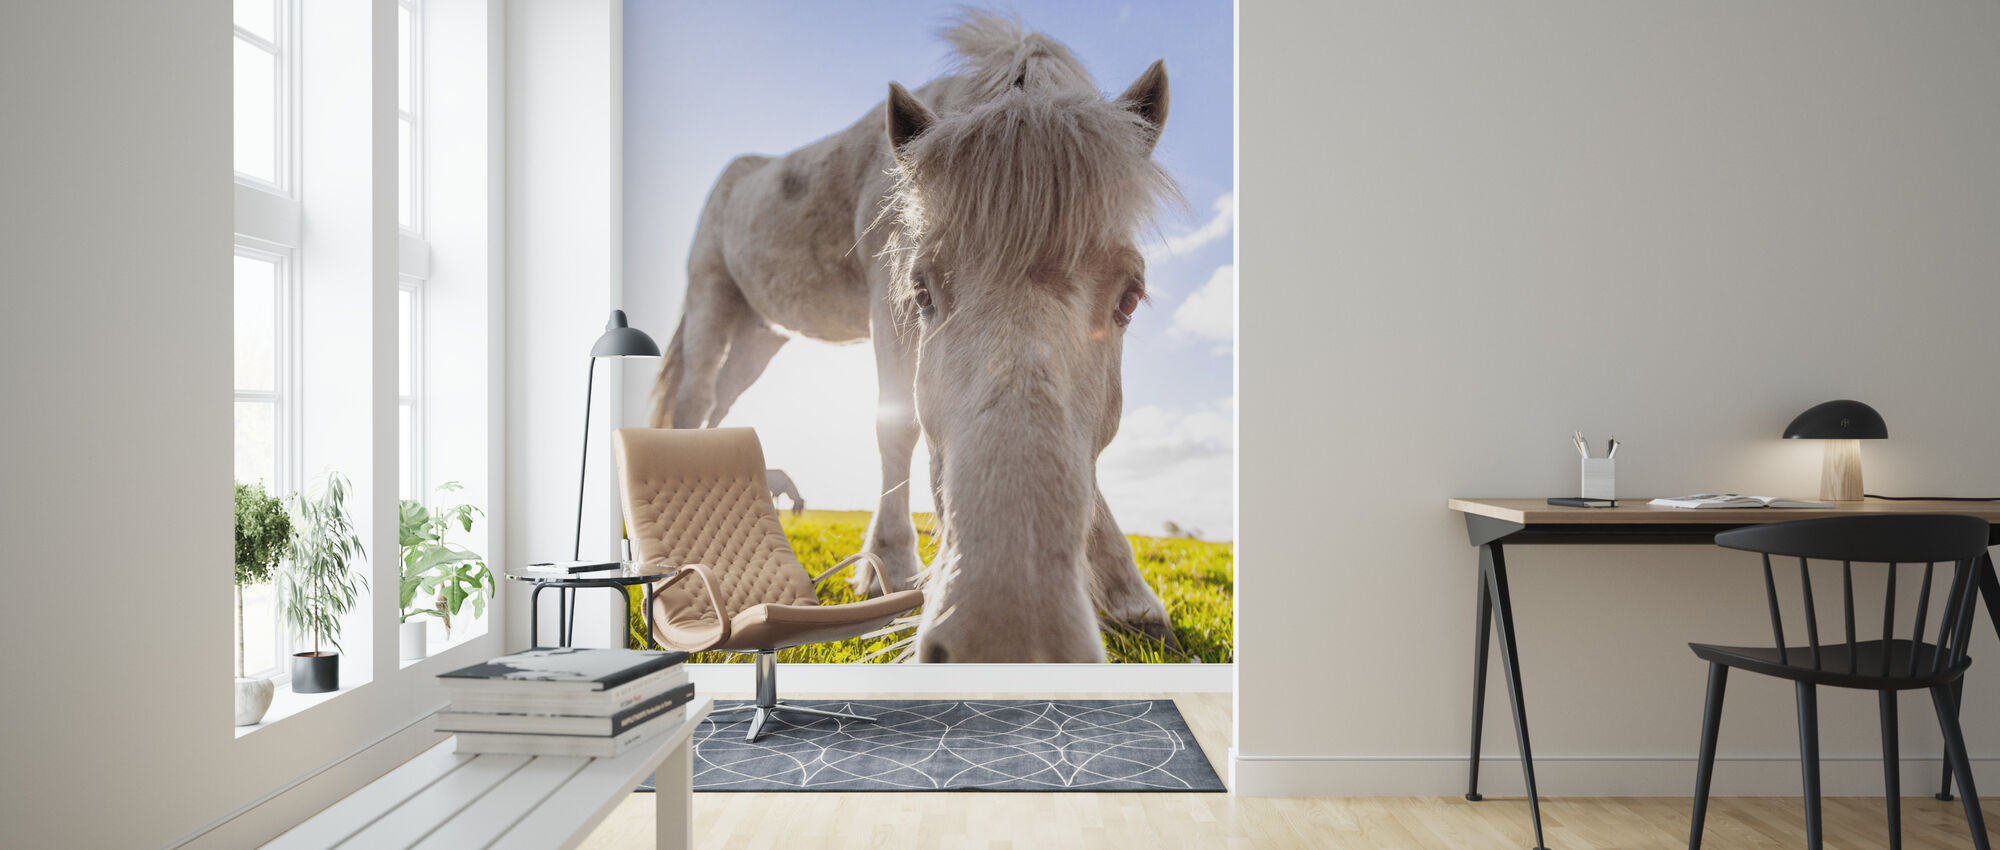 White Horse - Wallpaper - Living Room